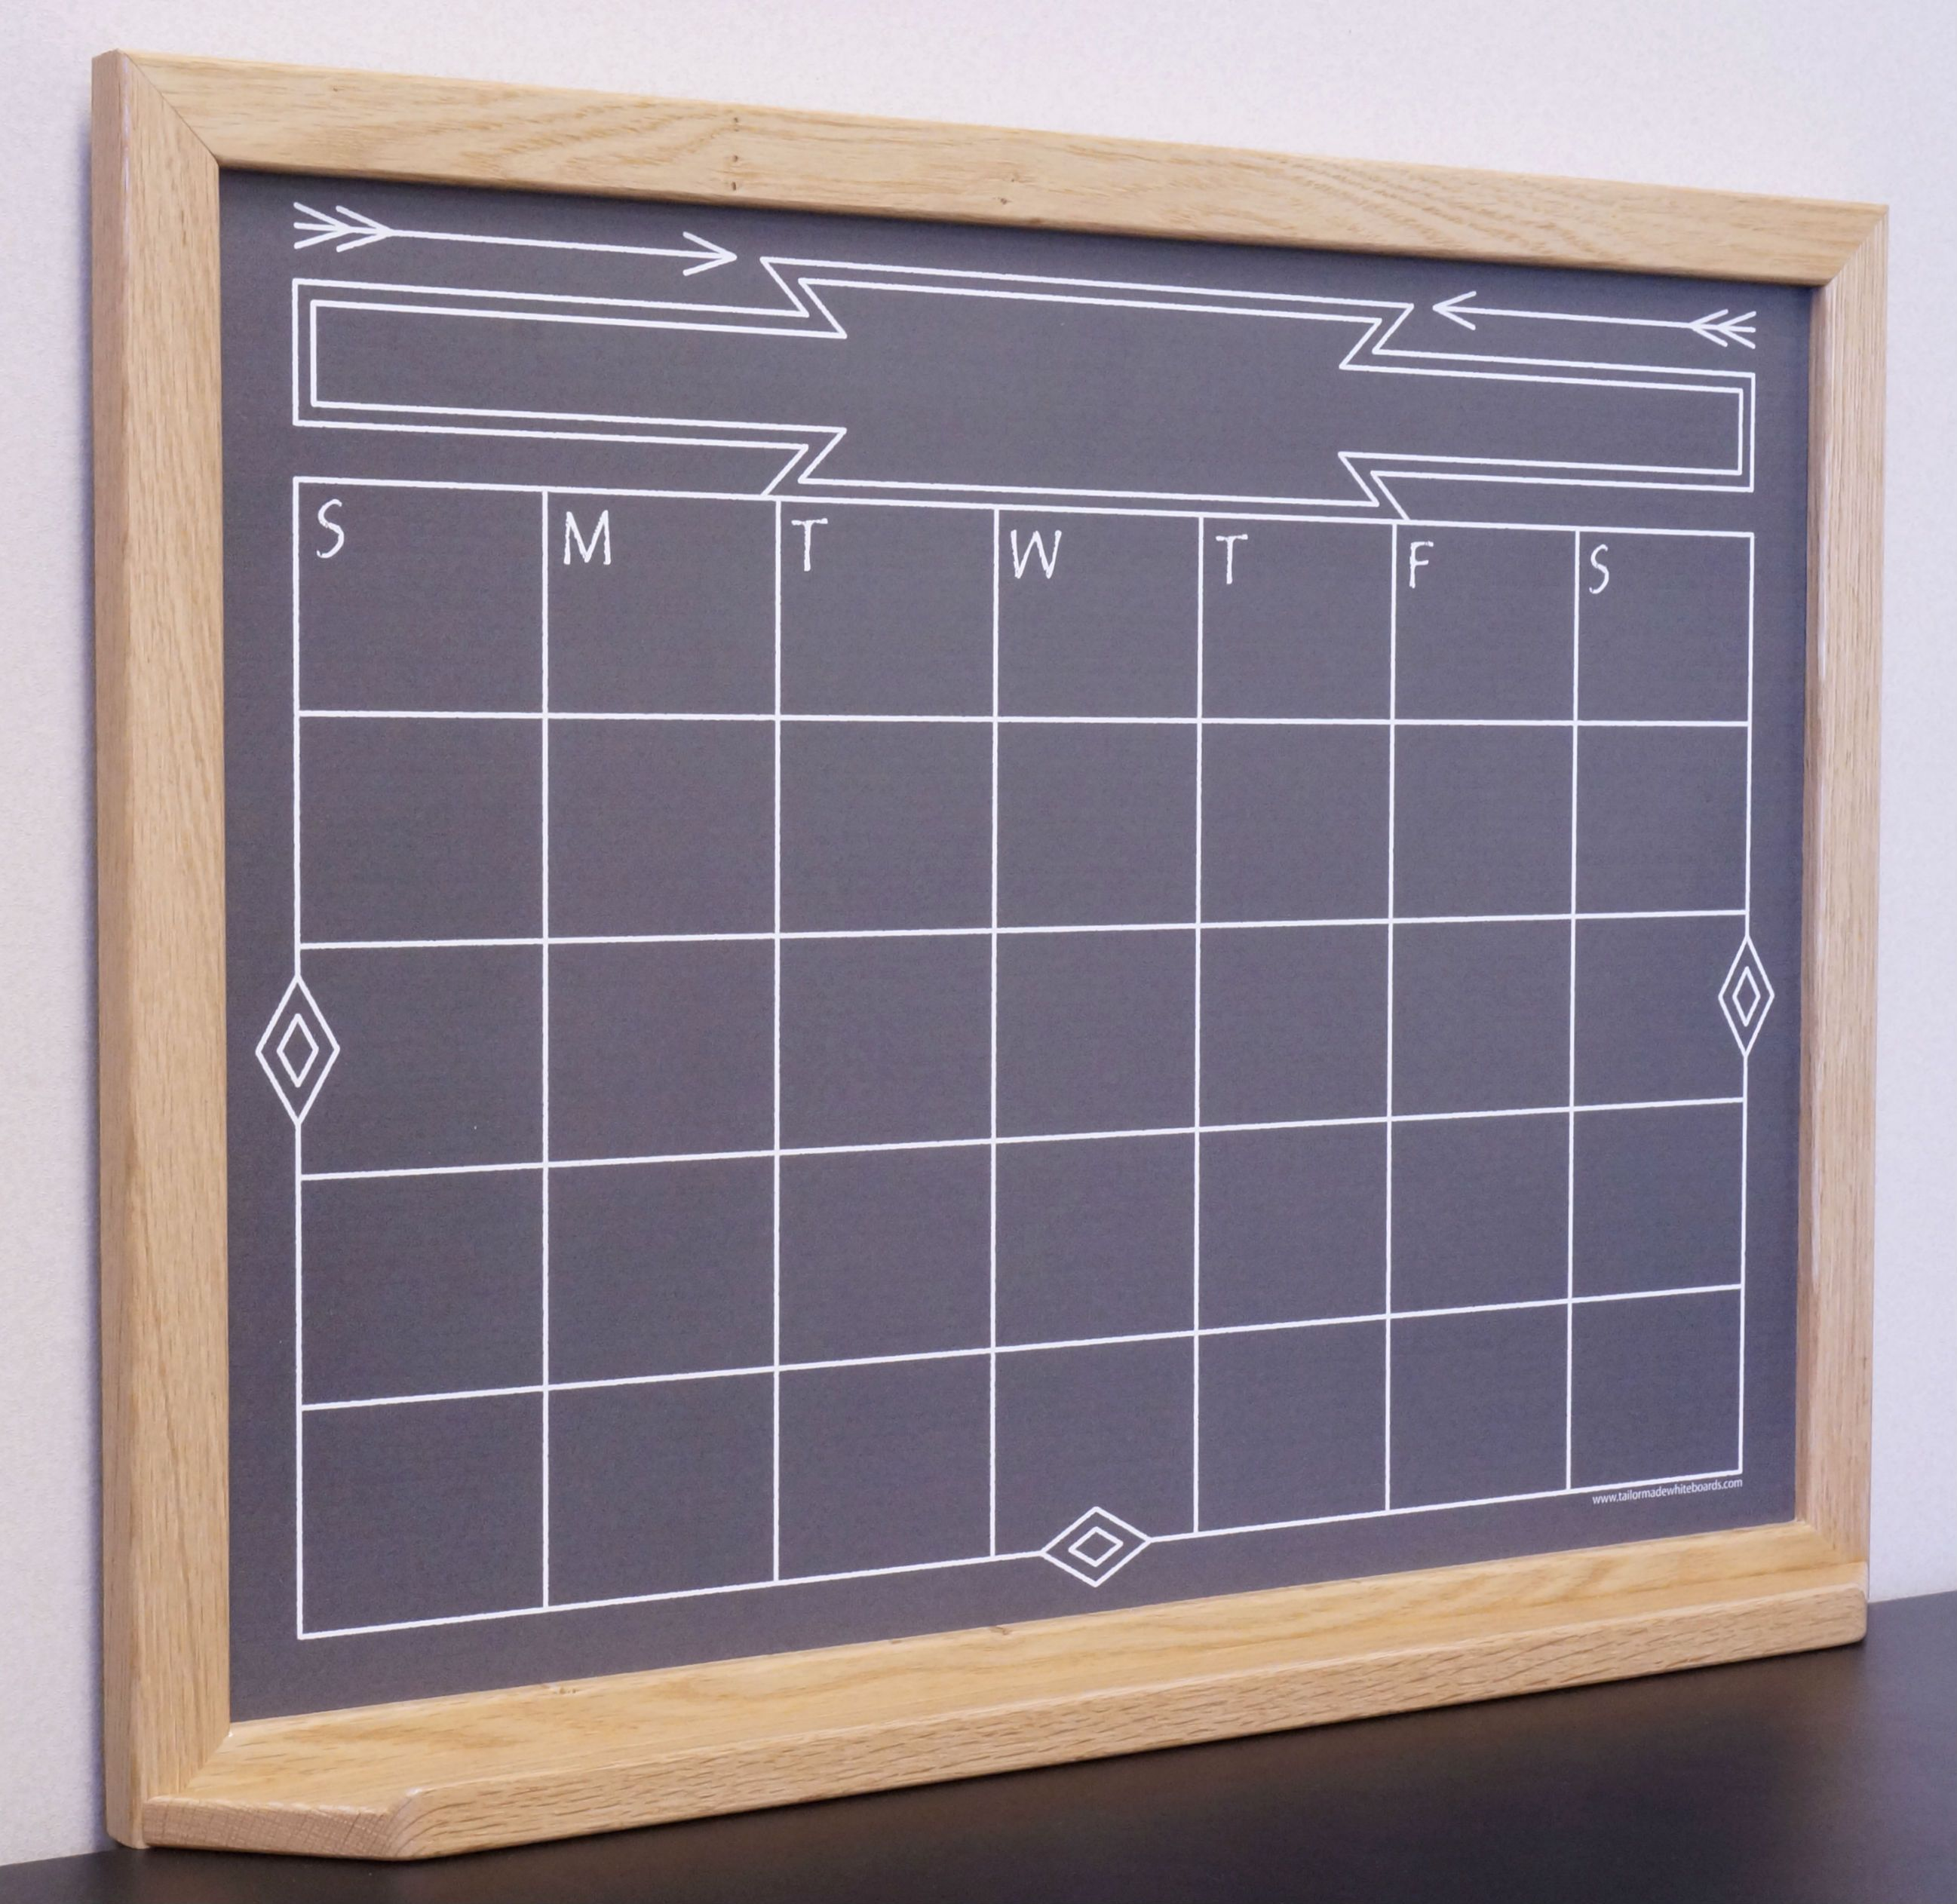 Our Framed Monthly Calendar Whiteboards will look great hanging on ...